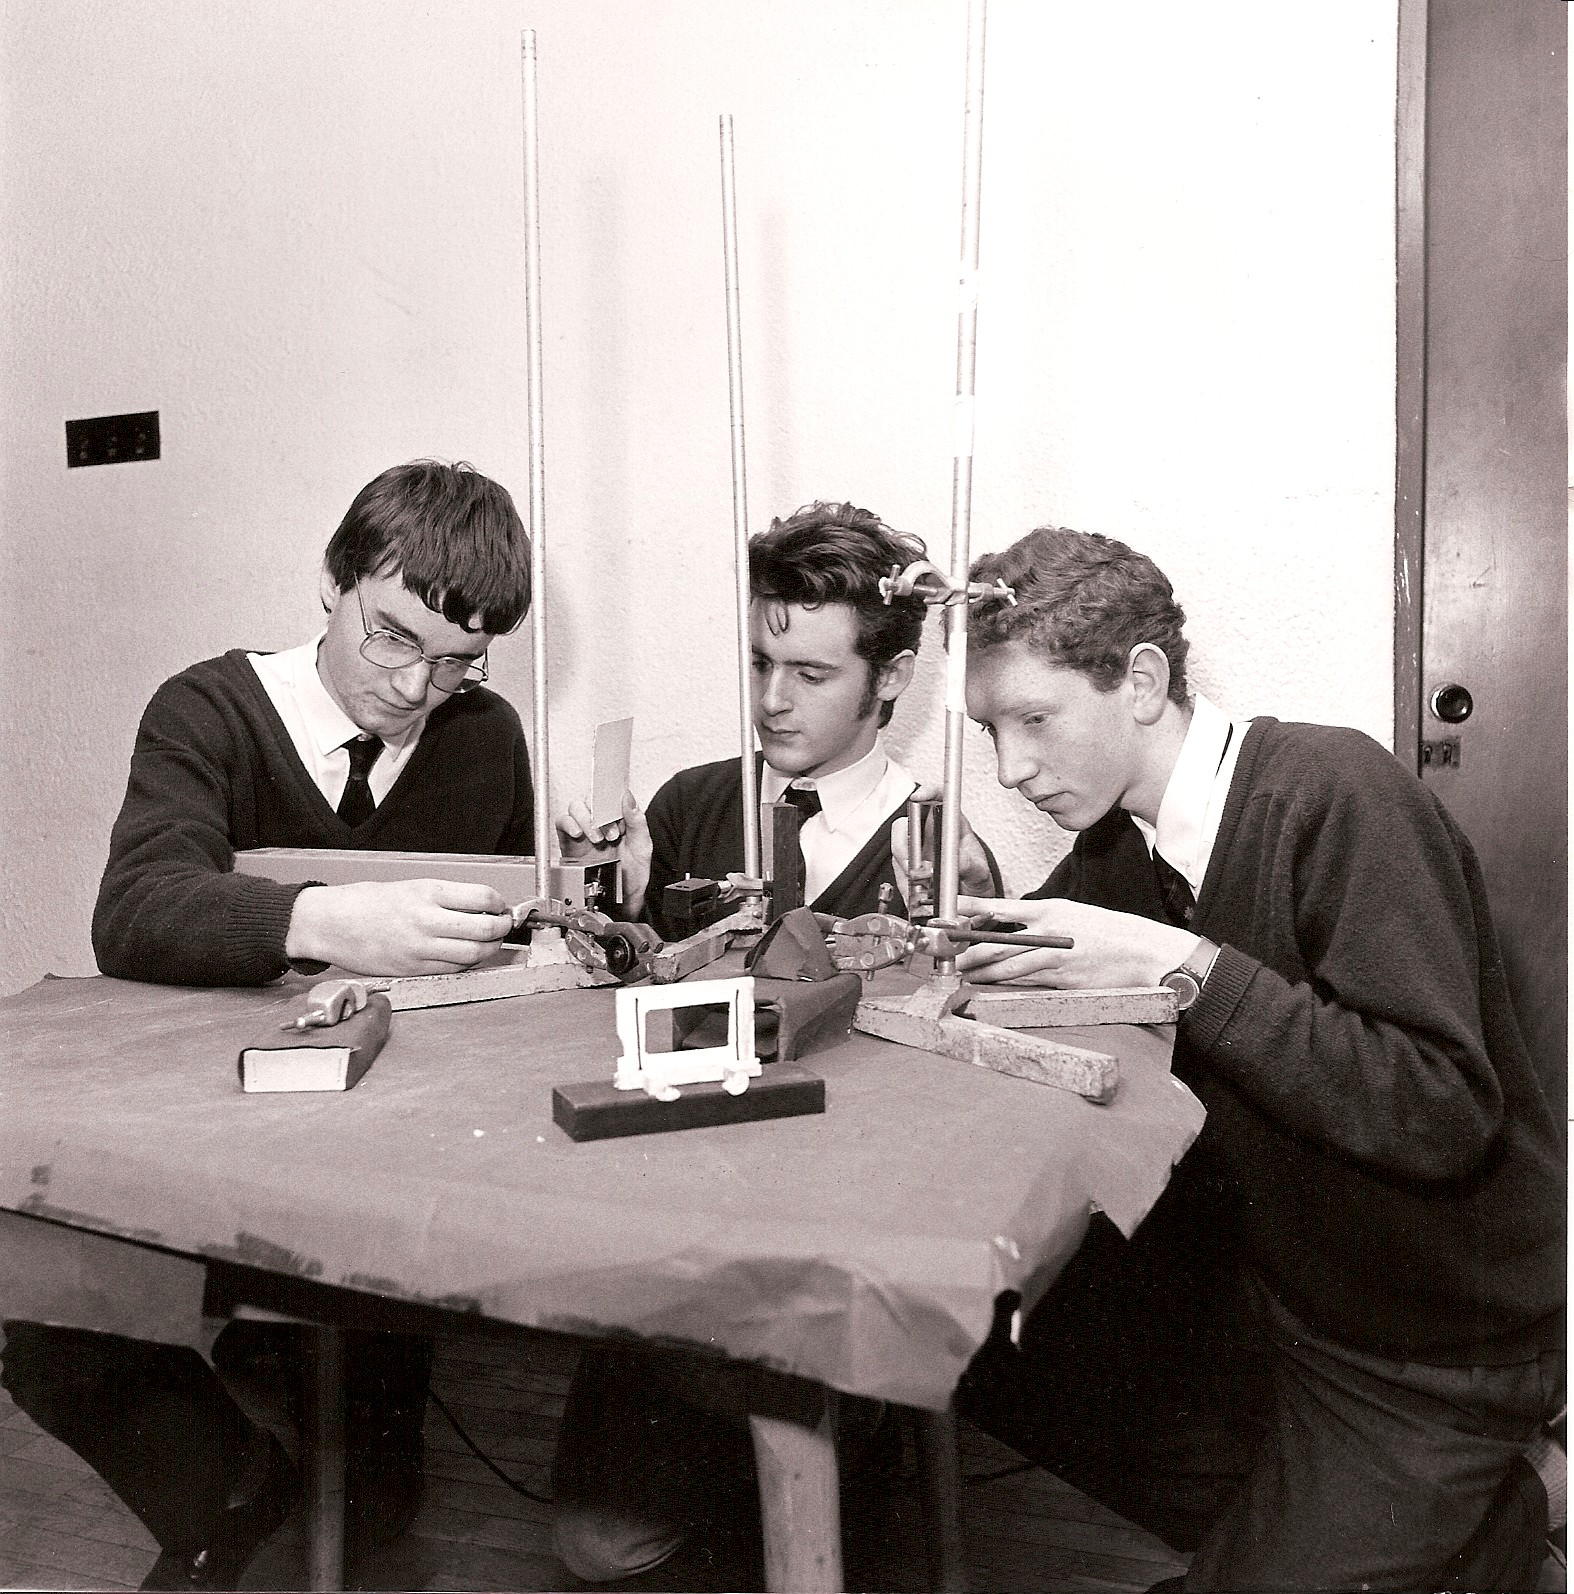 1989 Holographic Images of Optical Instuments - Conor Masterson, Eoin Moore & John Cass - Gonzaga College, Dublin